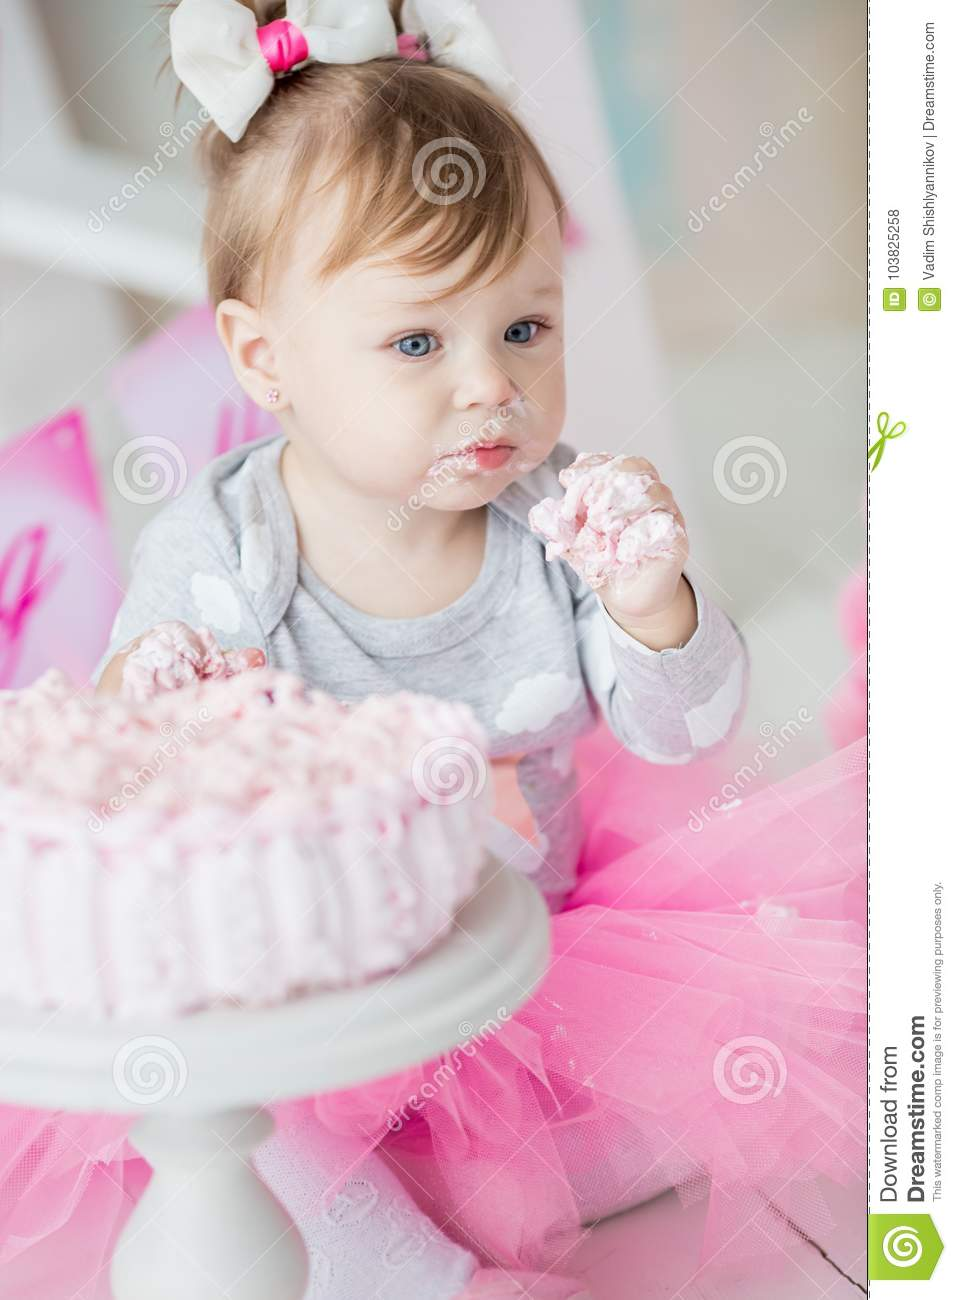 Surprising The First Cake Baby Portrait Of A Baby Stock Photo Image Of Funny Birthday Cards Online Hendilapandamsfinfo